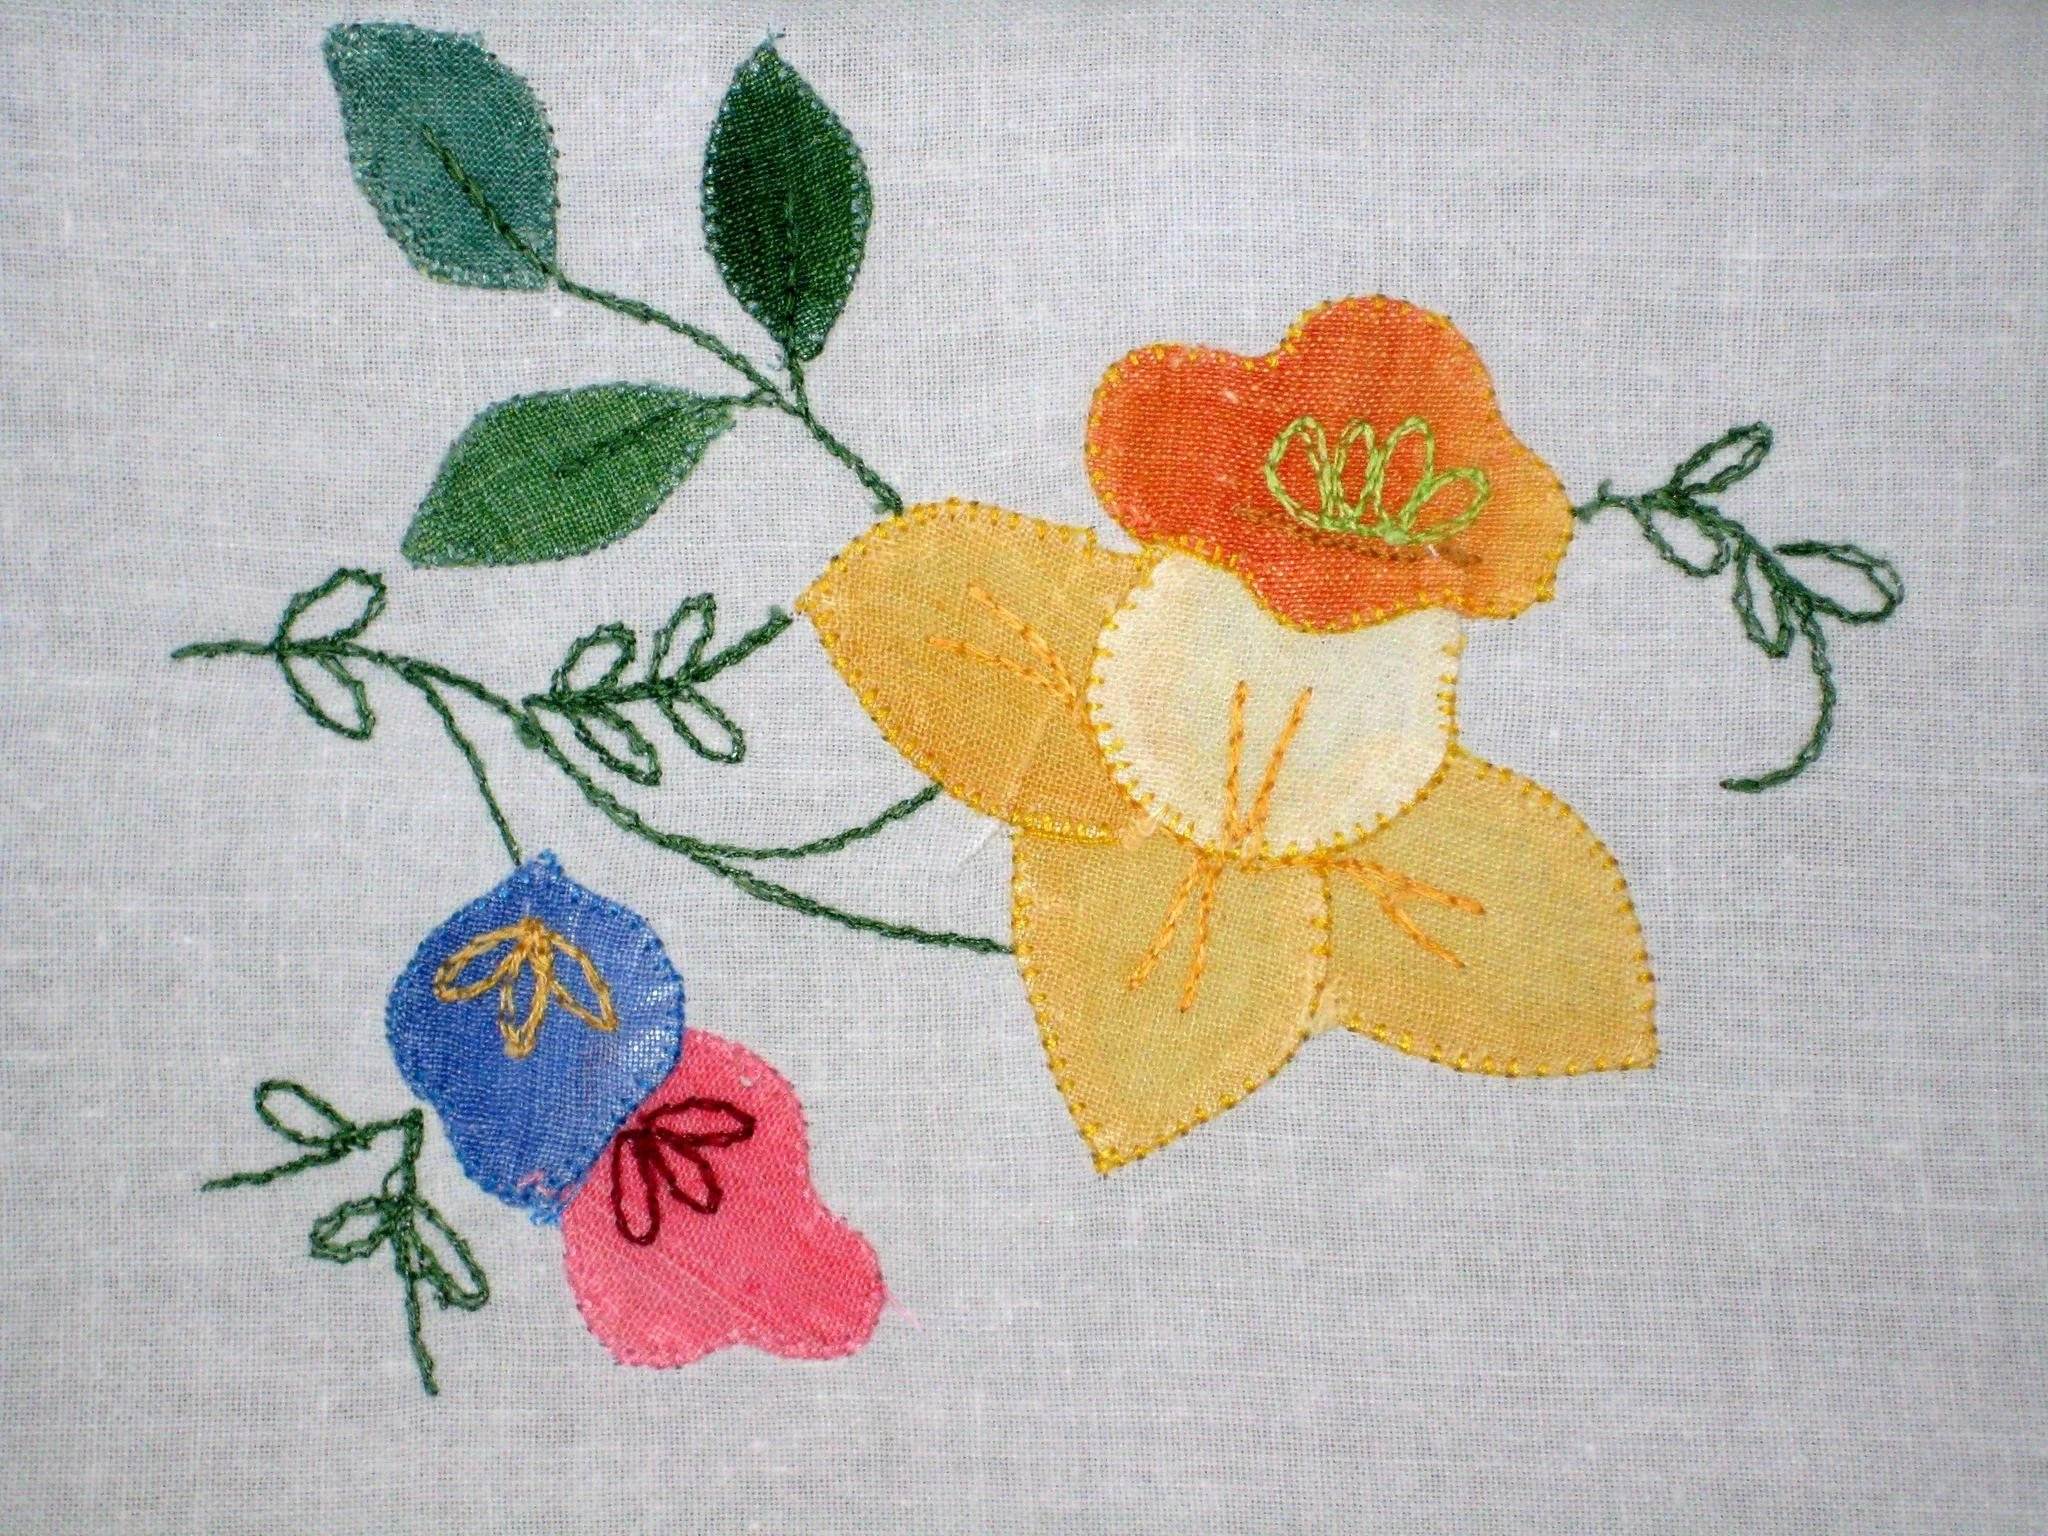 Daffodil applique guest towels and basket liner : suzanstreasures